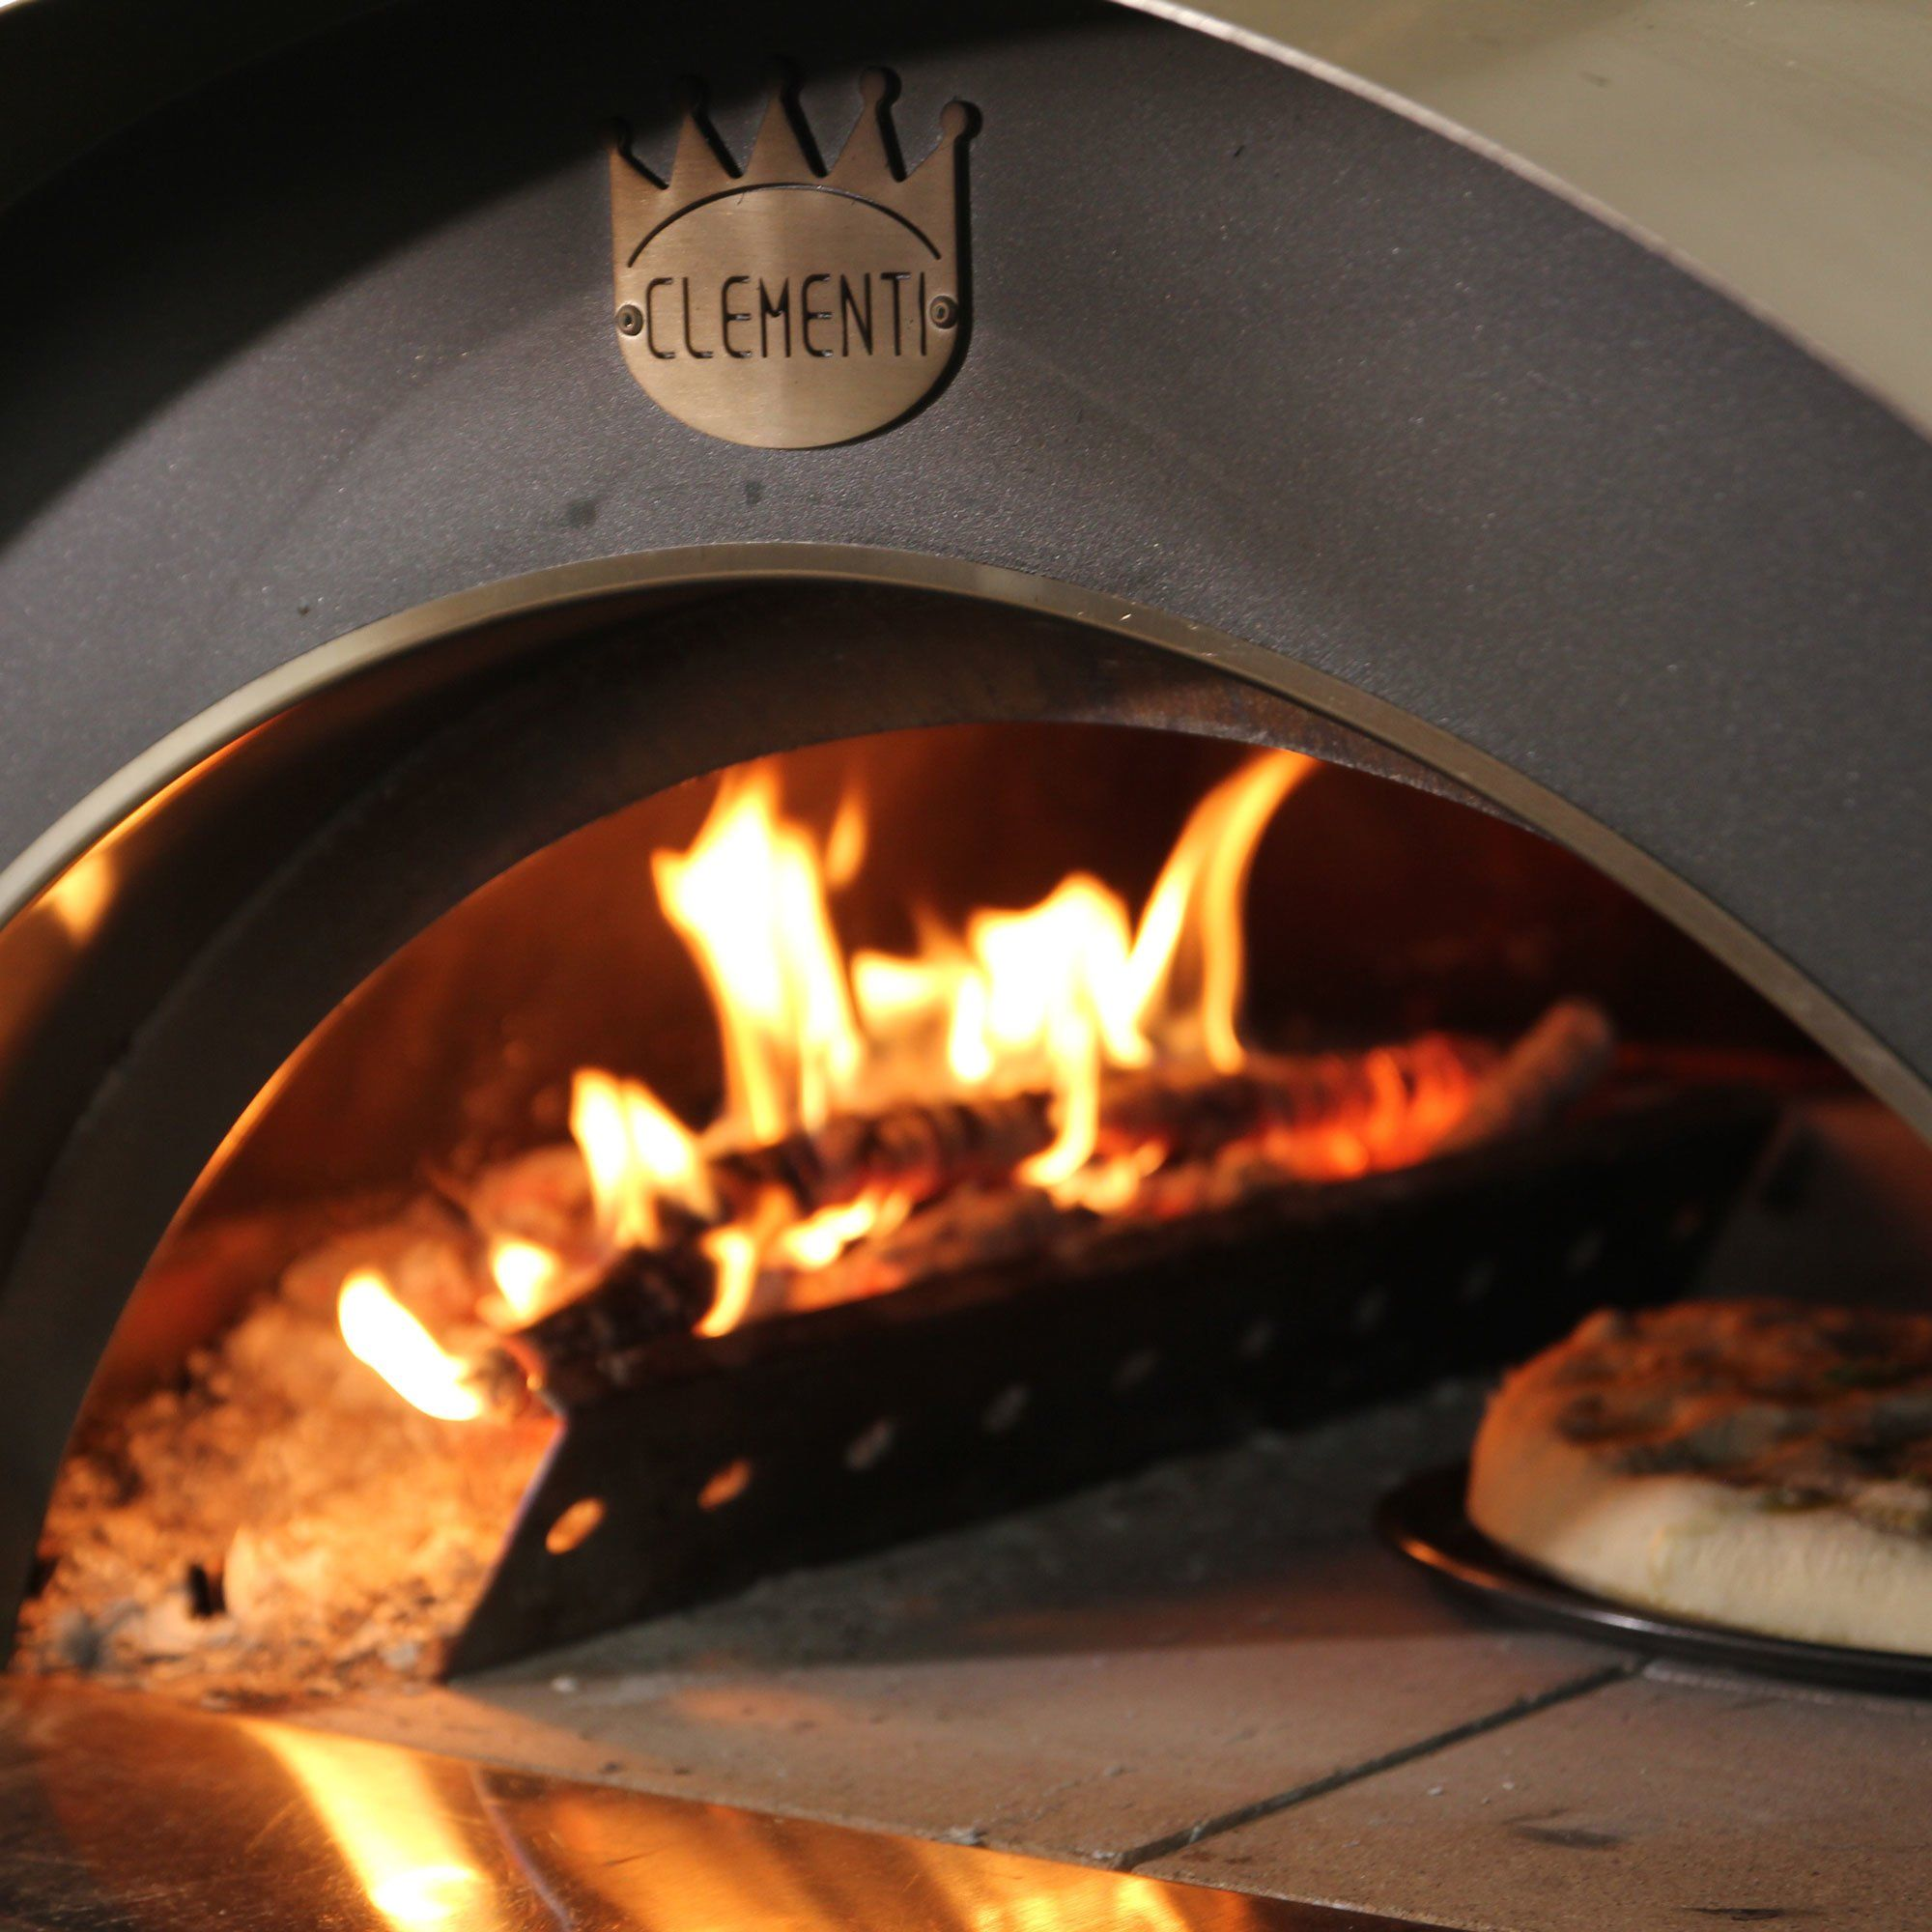 Clementi Family Wood-fired Pizza Oven 100×80 cm.  Anthracite